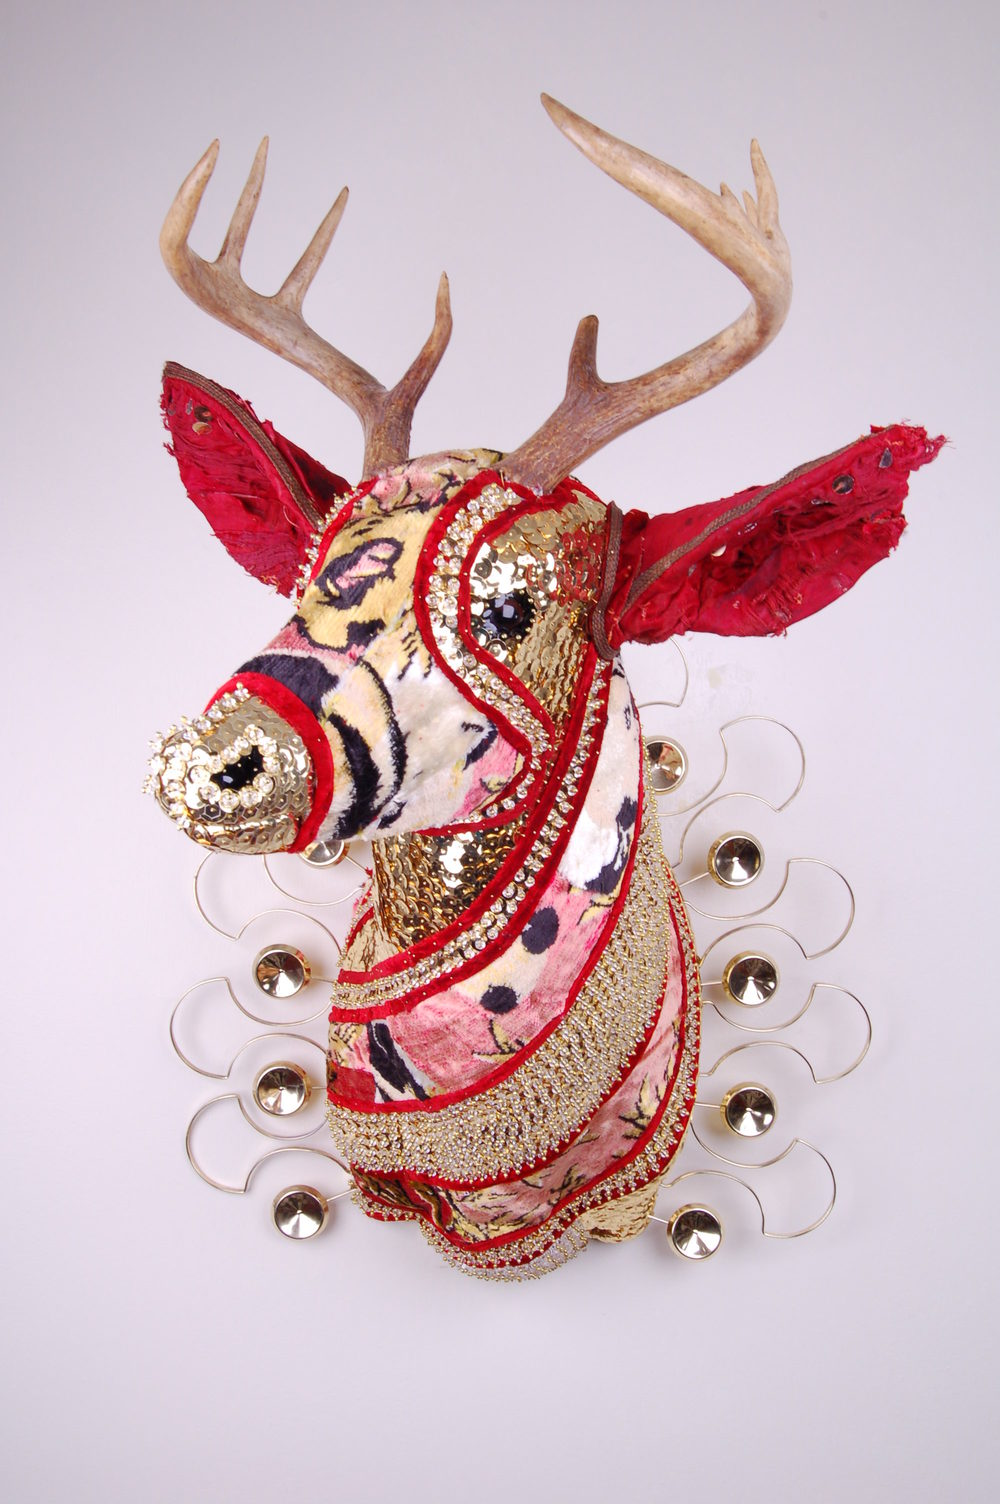 Prayer  polyurethane foam, antlers, glass, sequins, beads, pins and minks, 2016